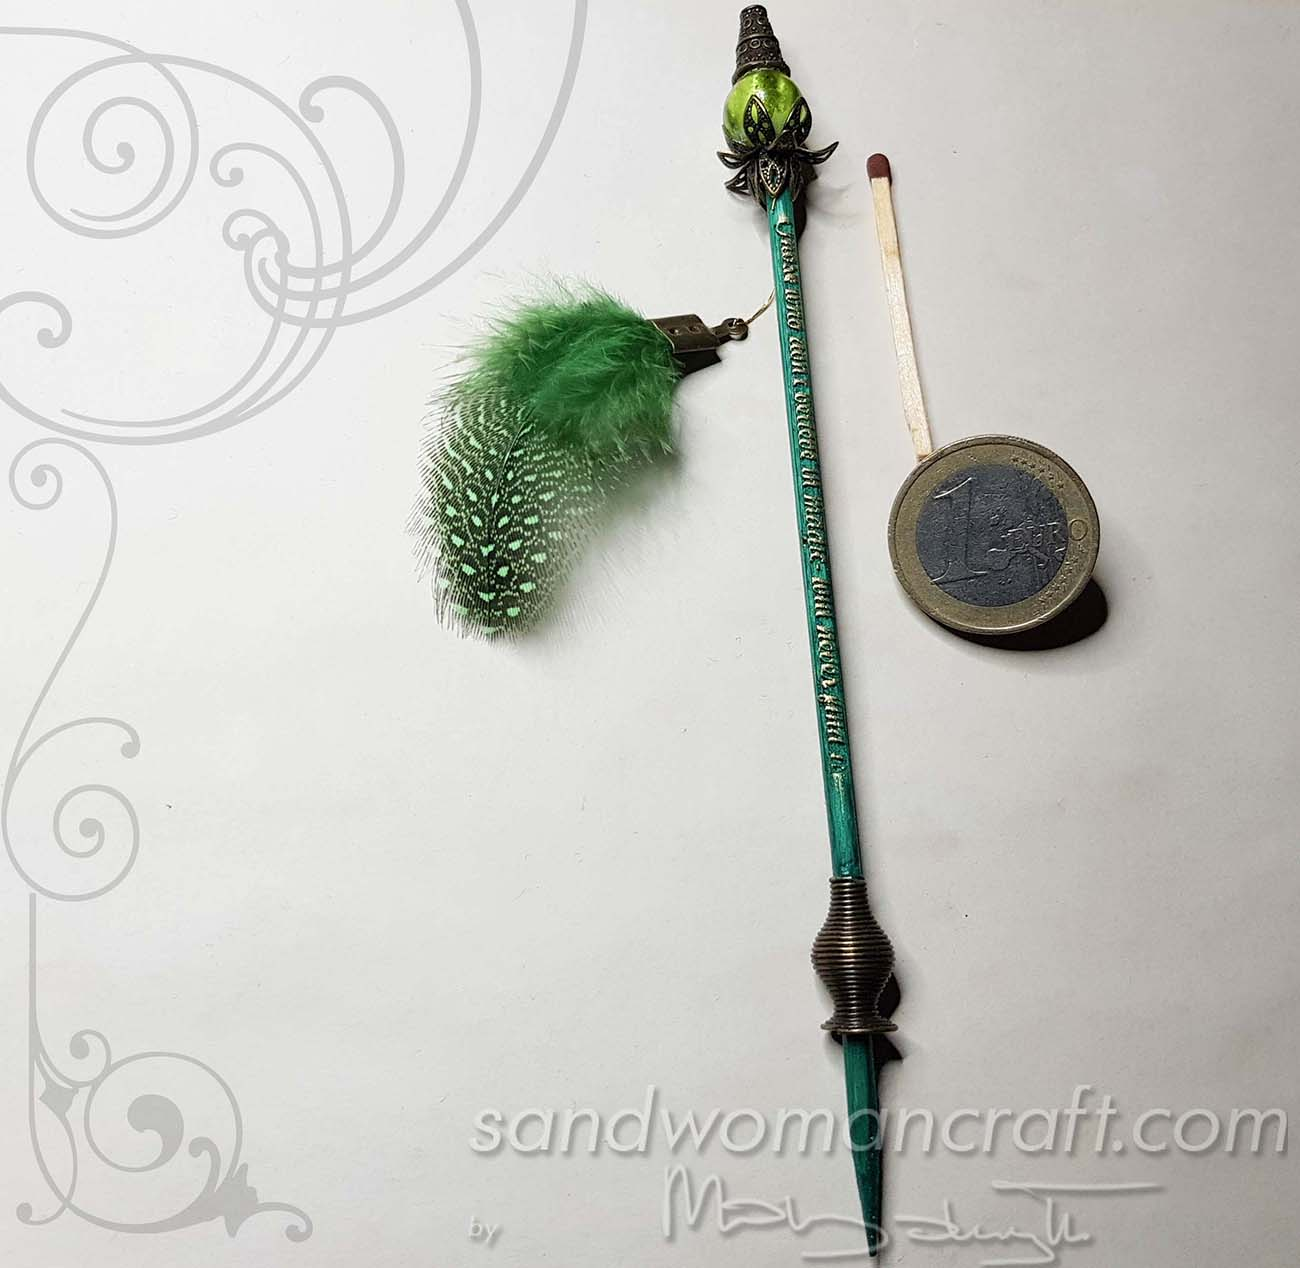 Miniature wizard's walking stick in green colour